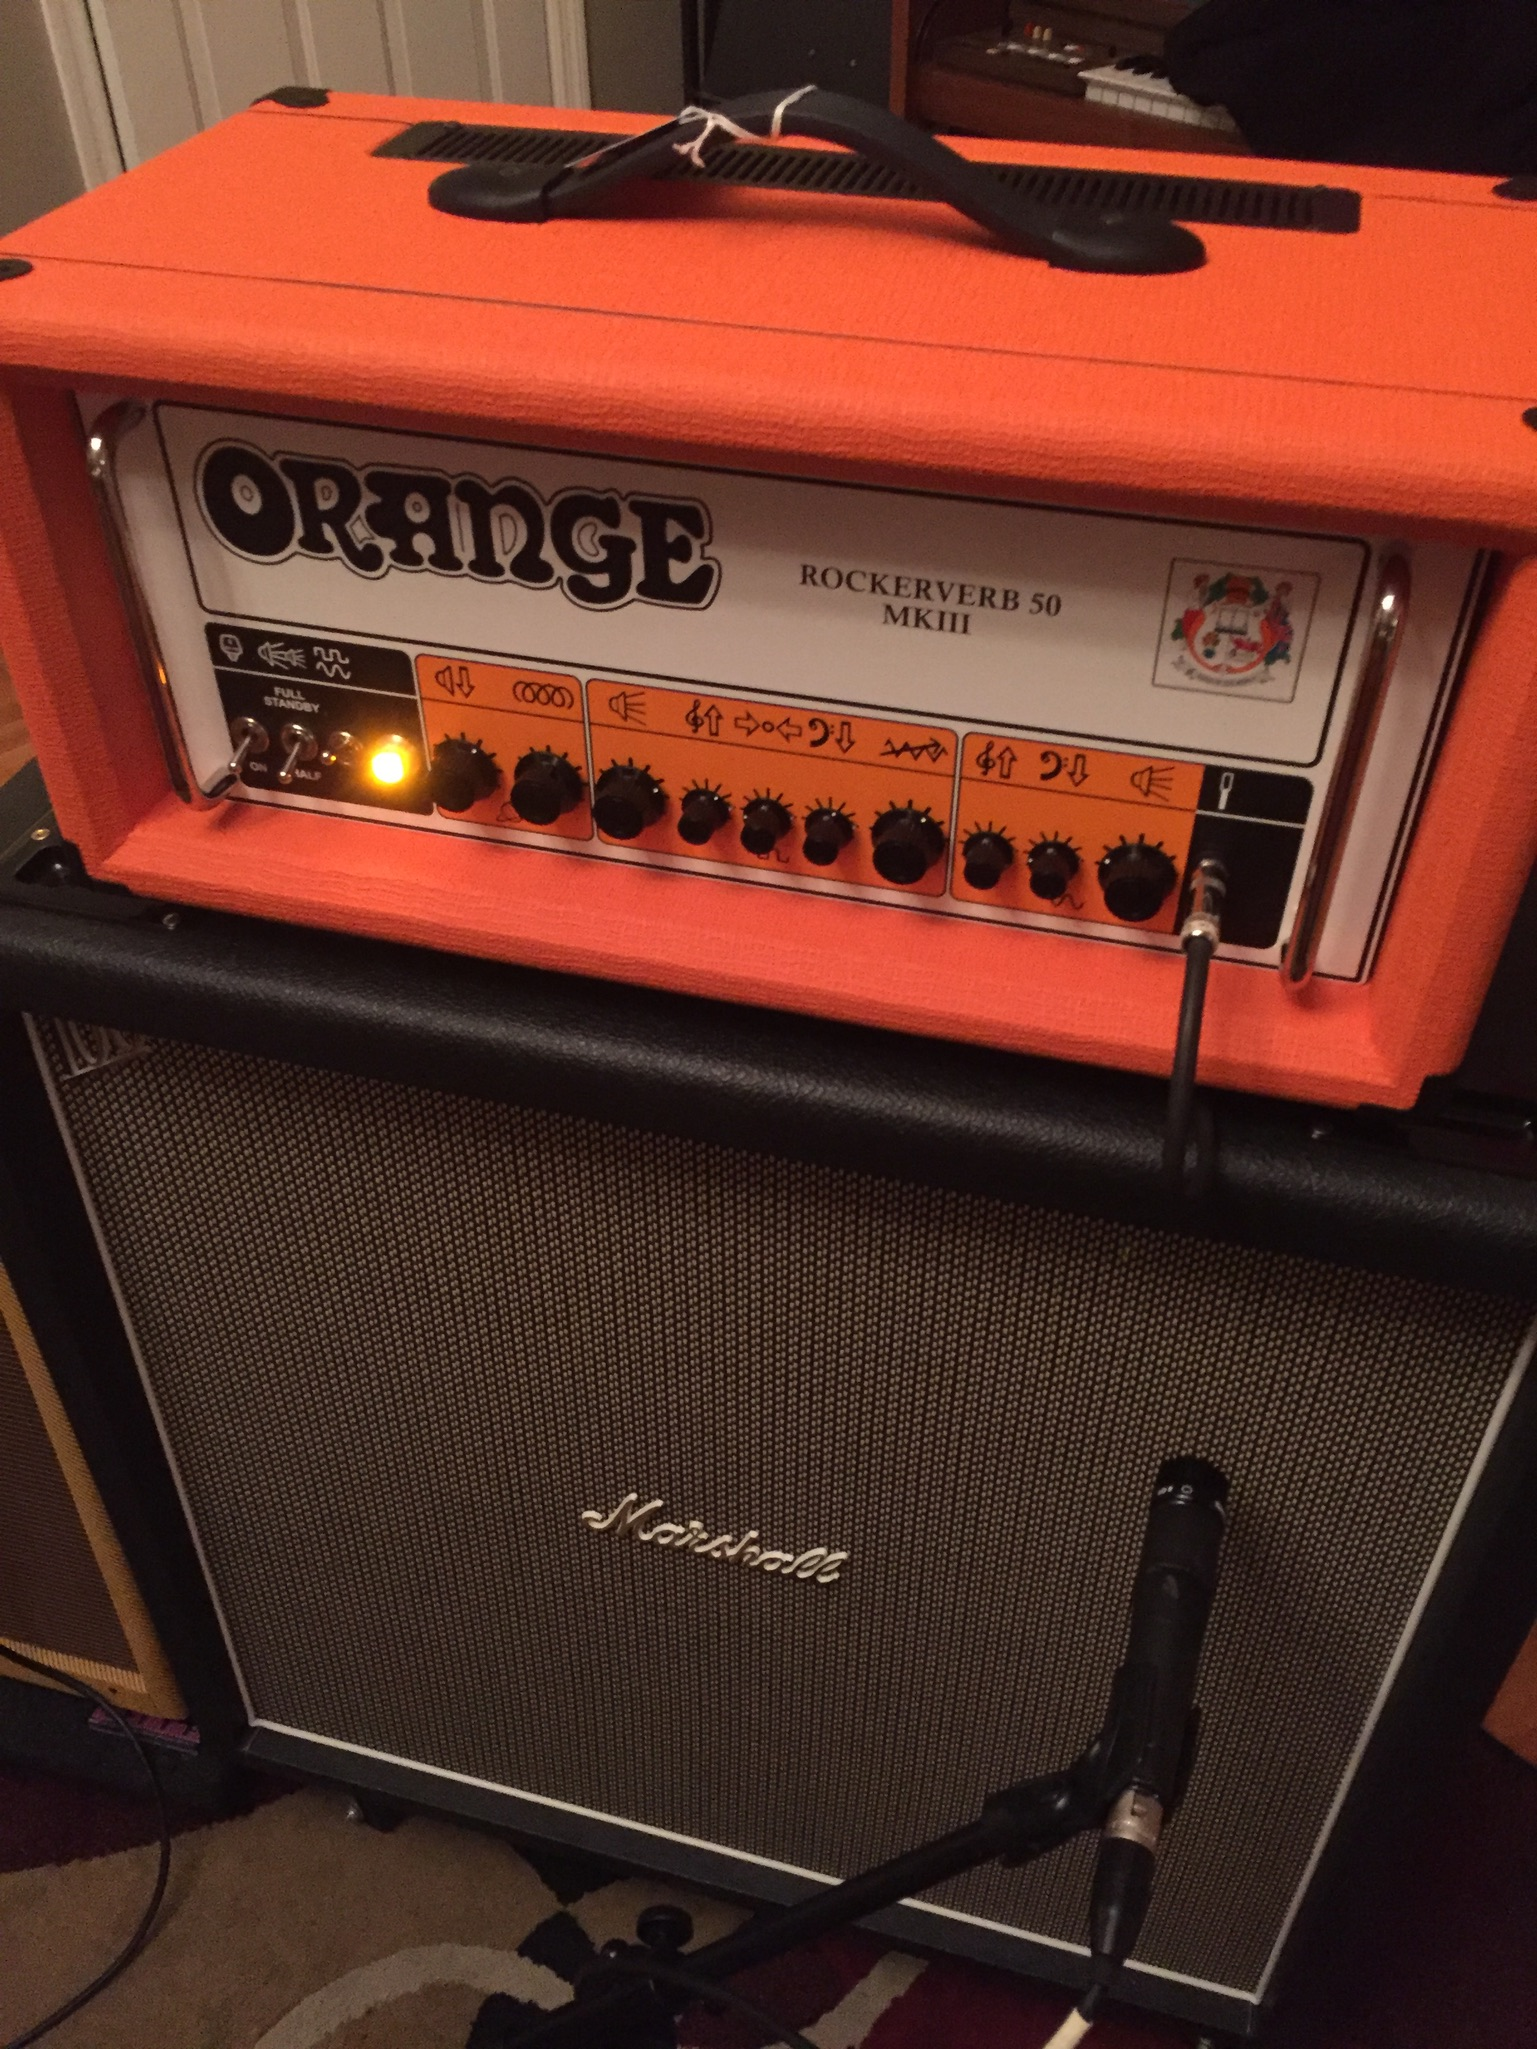 We were the first act to track guitars with this Orange Rockerverb head.